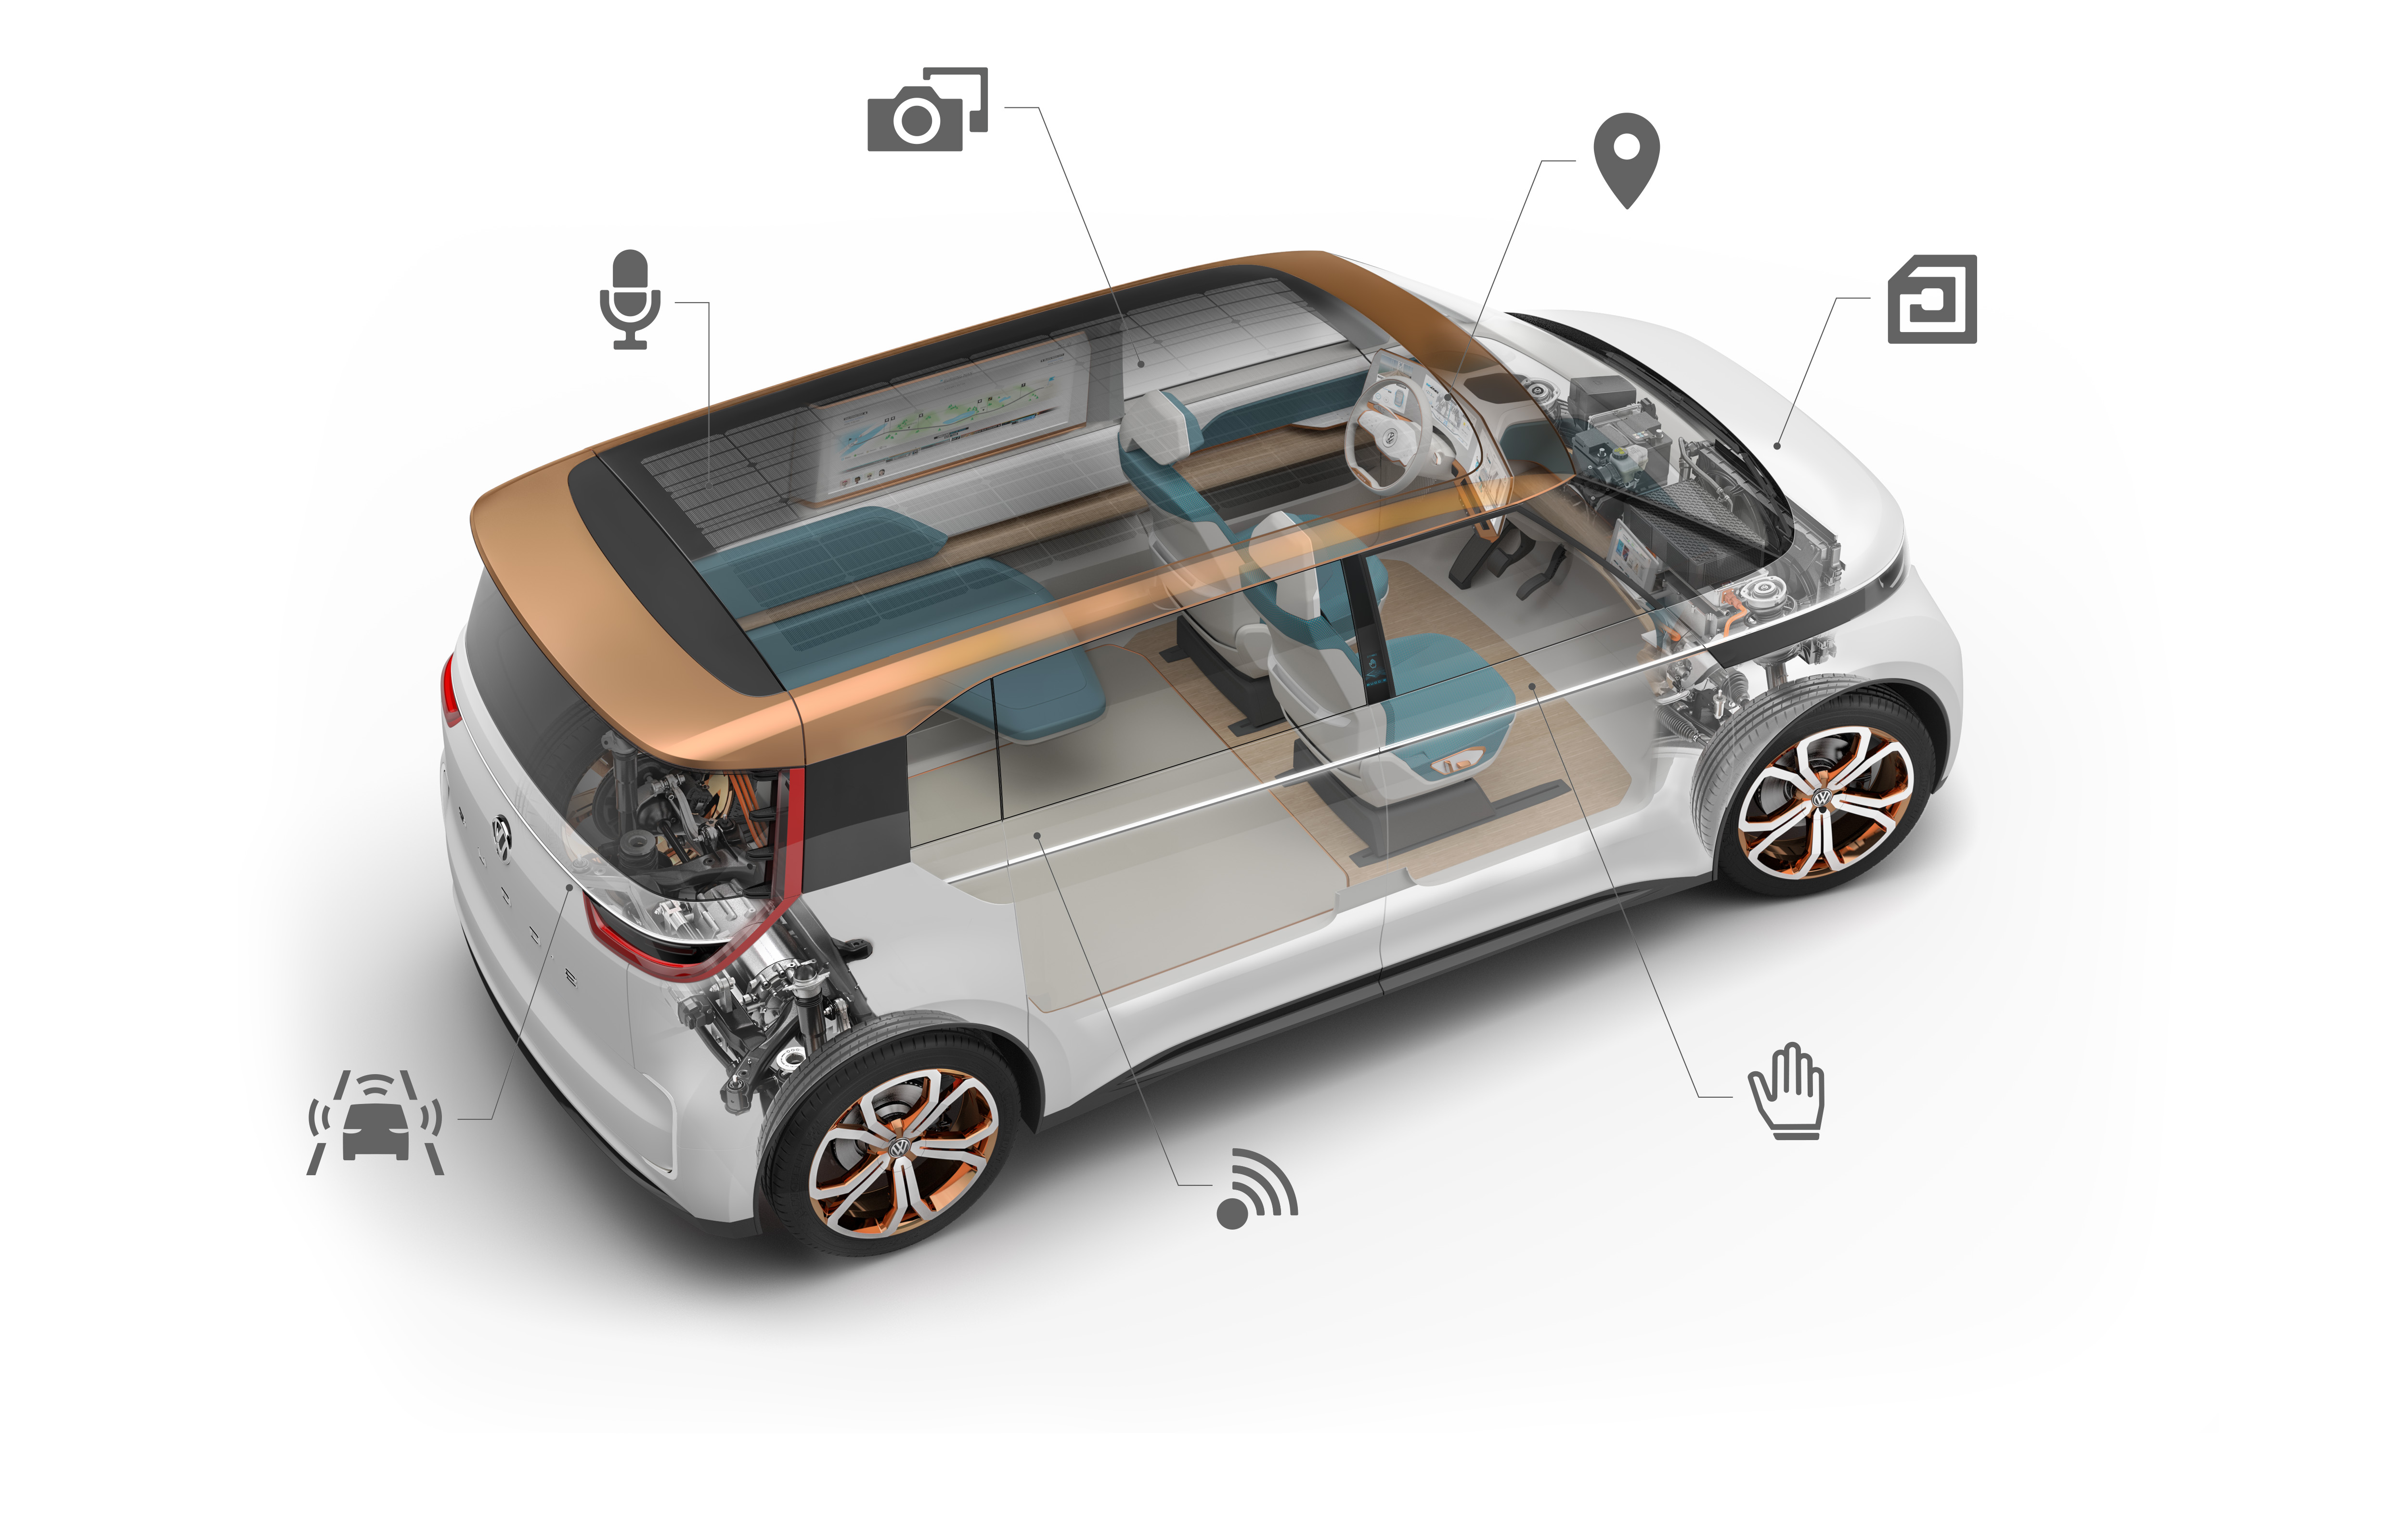 The BUDD-e concept at CES was a preview of some of VW's work with LG.